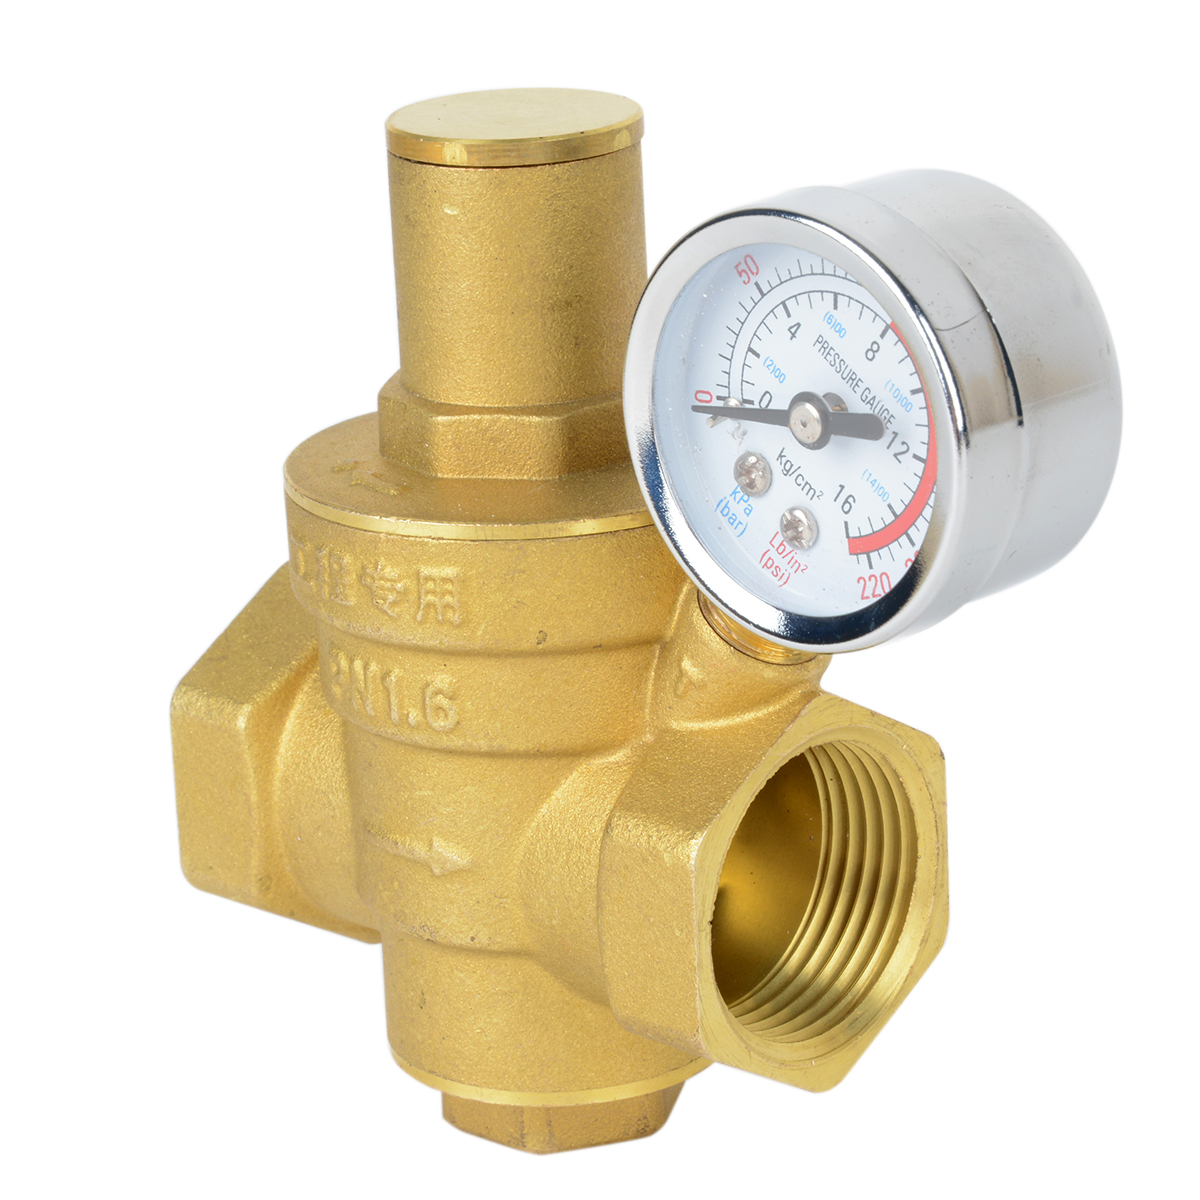 brass dn15 water pressure reducing valve 1 2 npt with gauge meter mayitr adjustable in valve. Black Bedroom Furniture Sets. Home Design Ideas